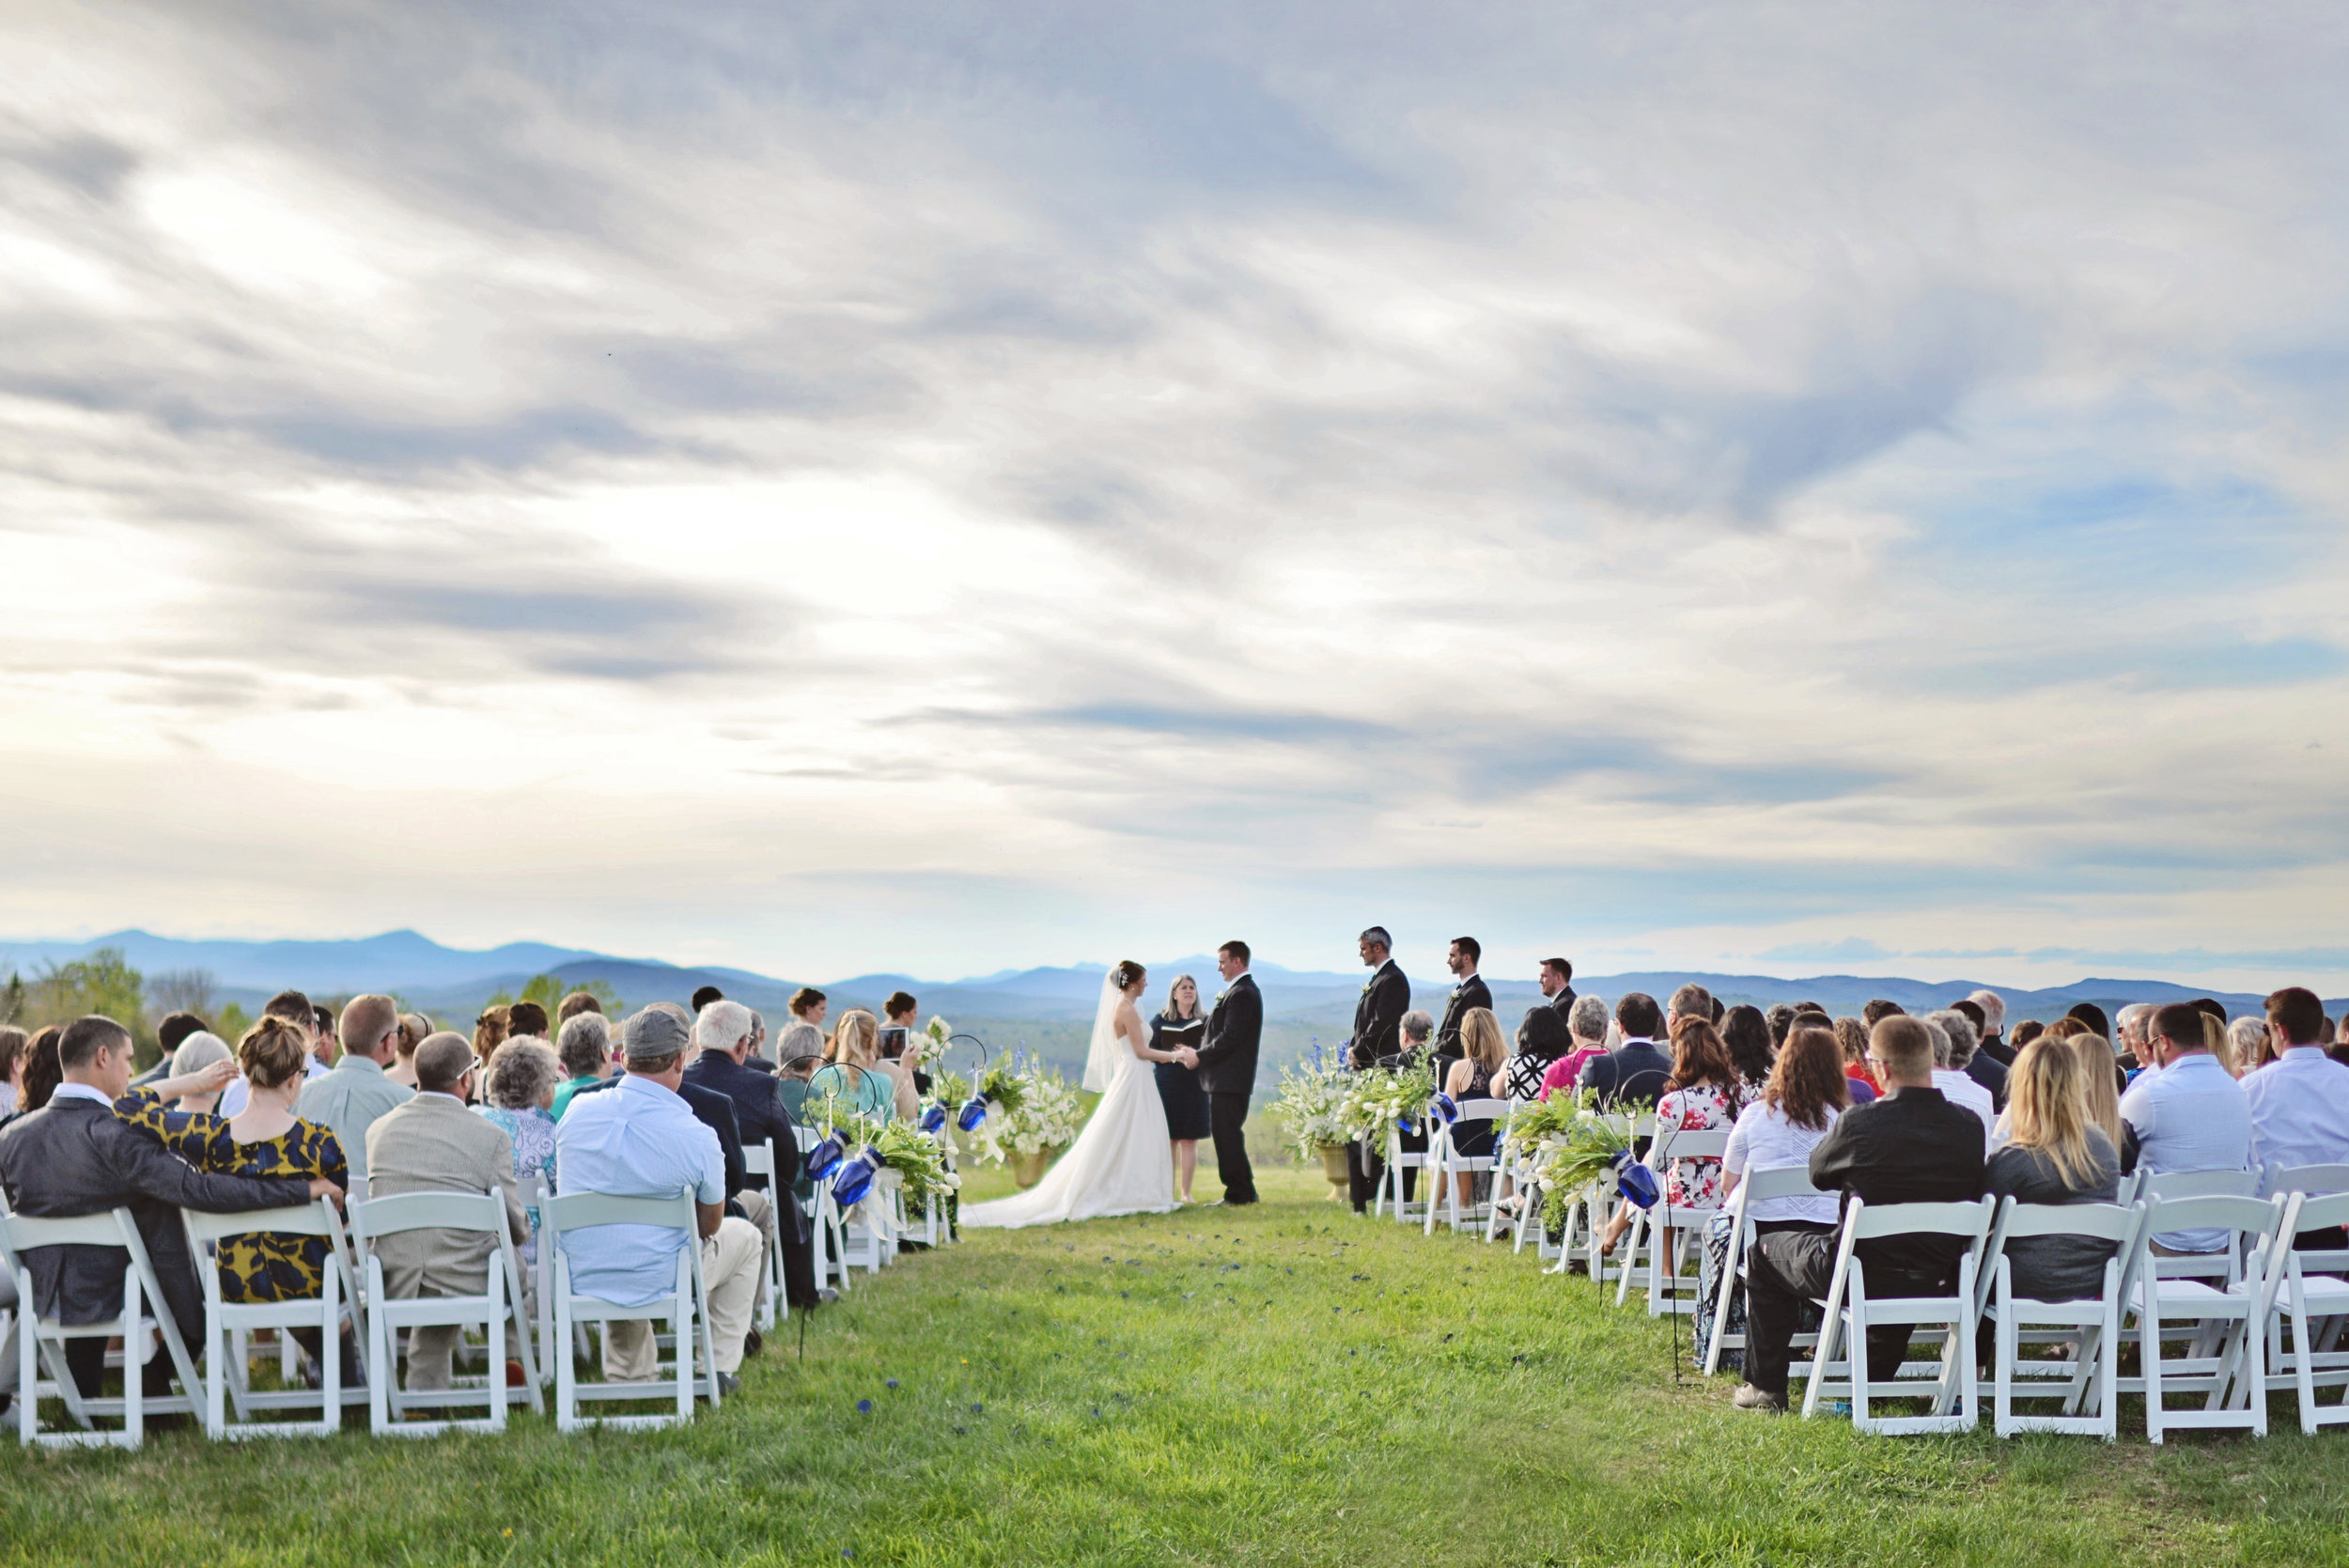 Completely custom wedding ceremony